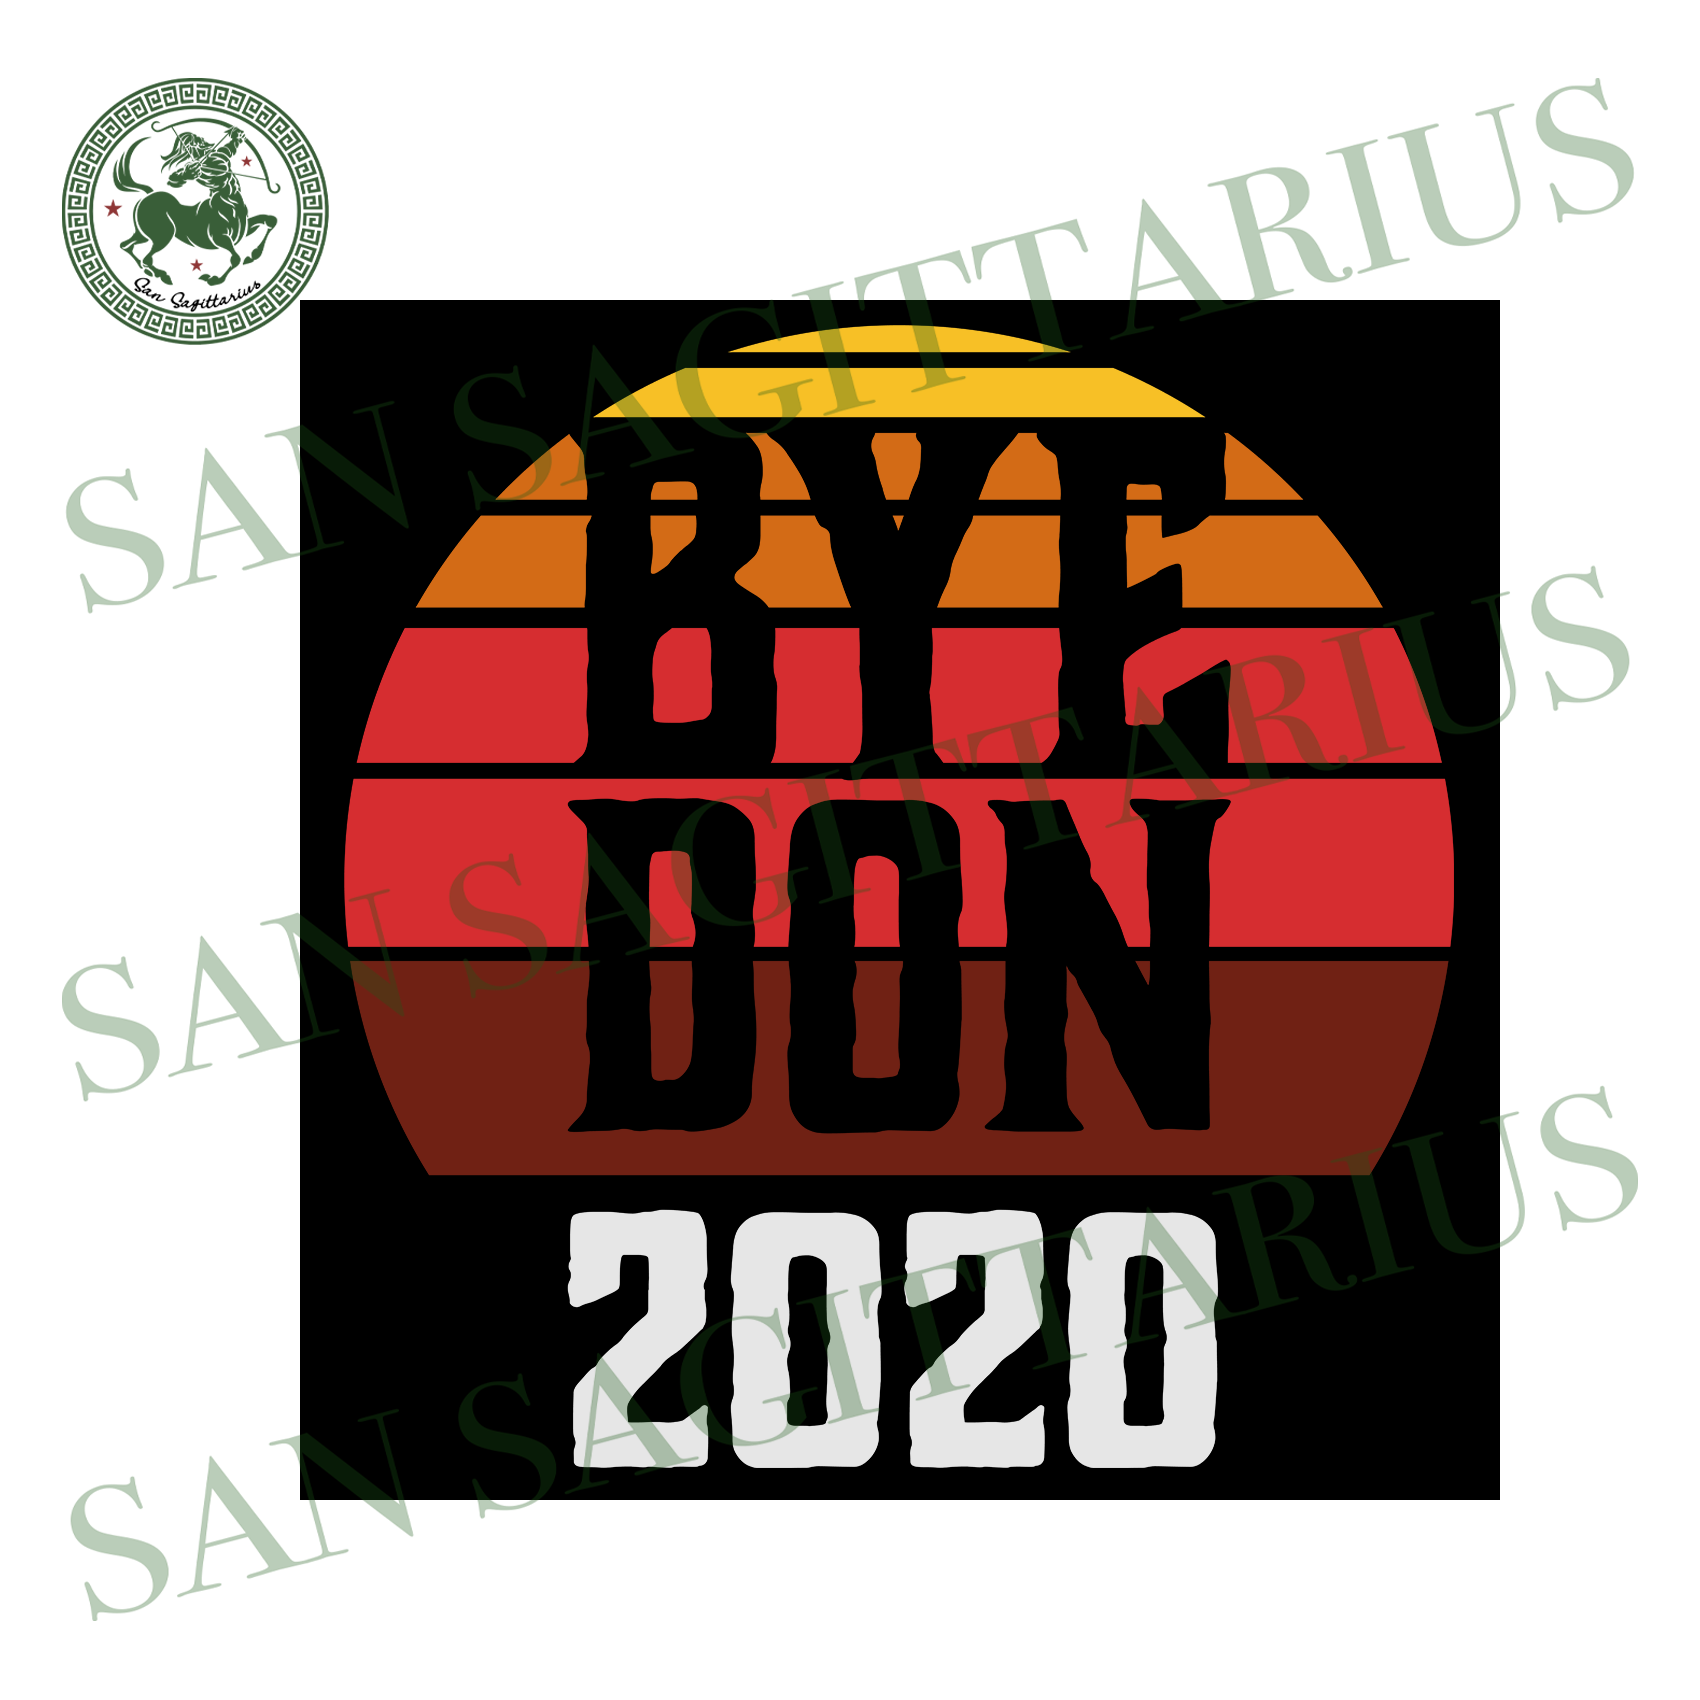 Bye don 2020 svg,svg,joe bden 2020 svg,anti trump svg,political shirt svg,presidential election 20 svg,biden gift svg,svg cricut, silhouette svg files, cricut svg, silhouette svg, svg designs